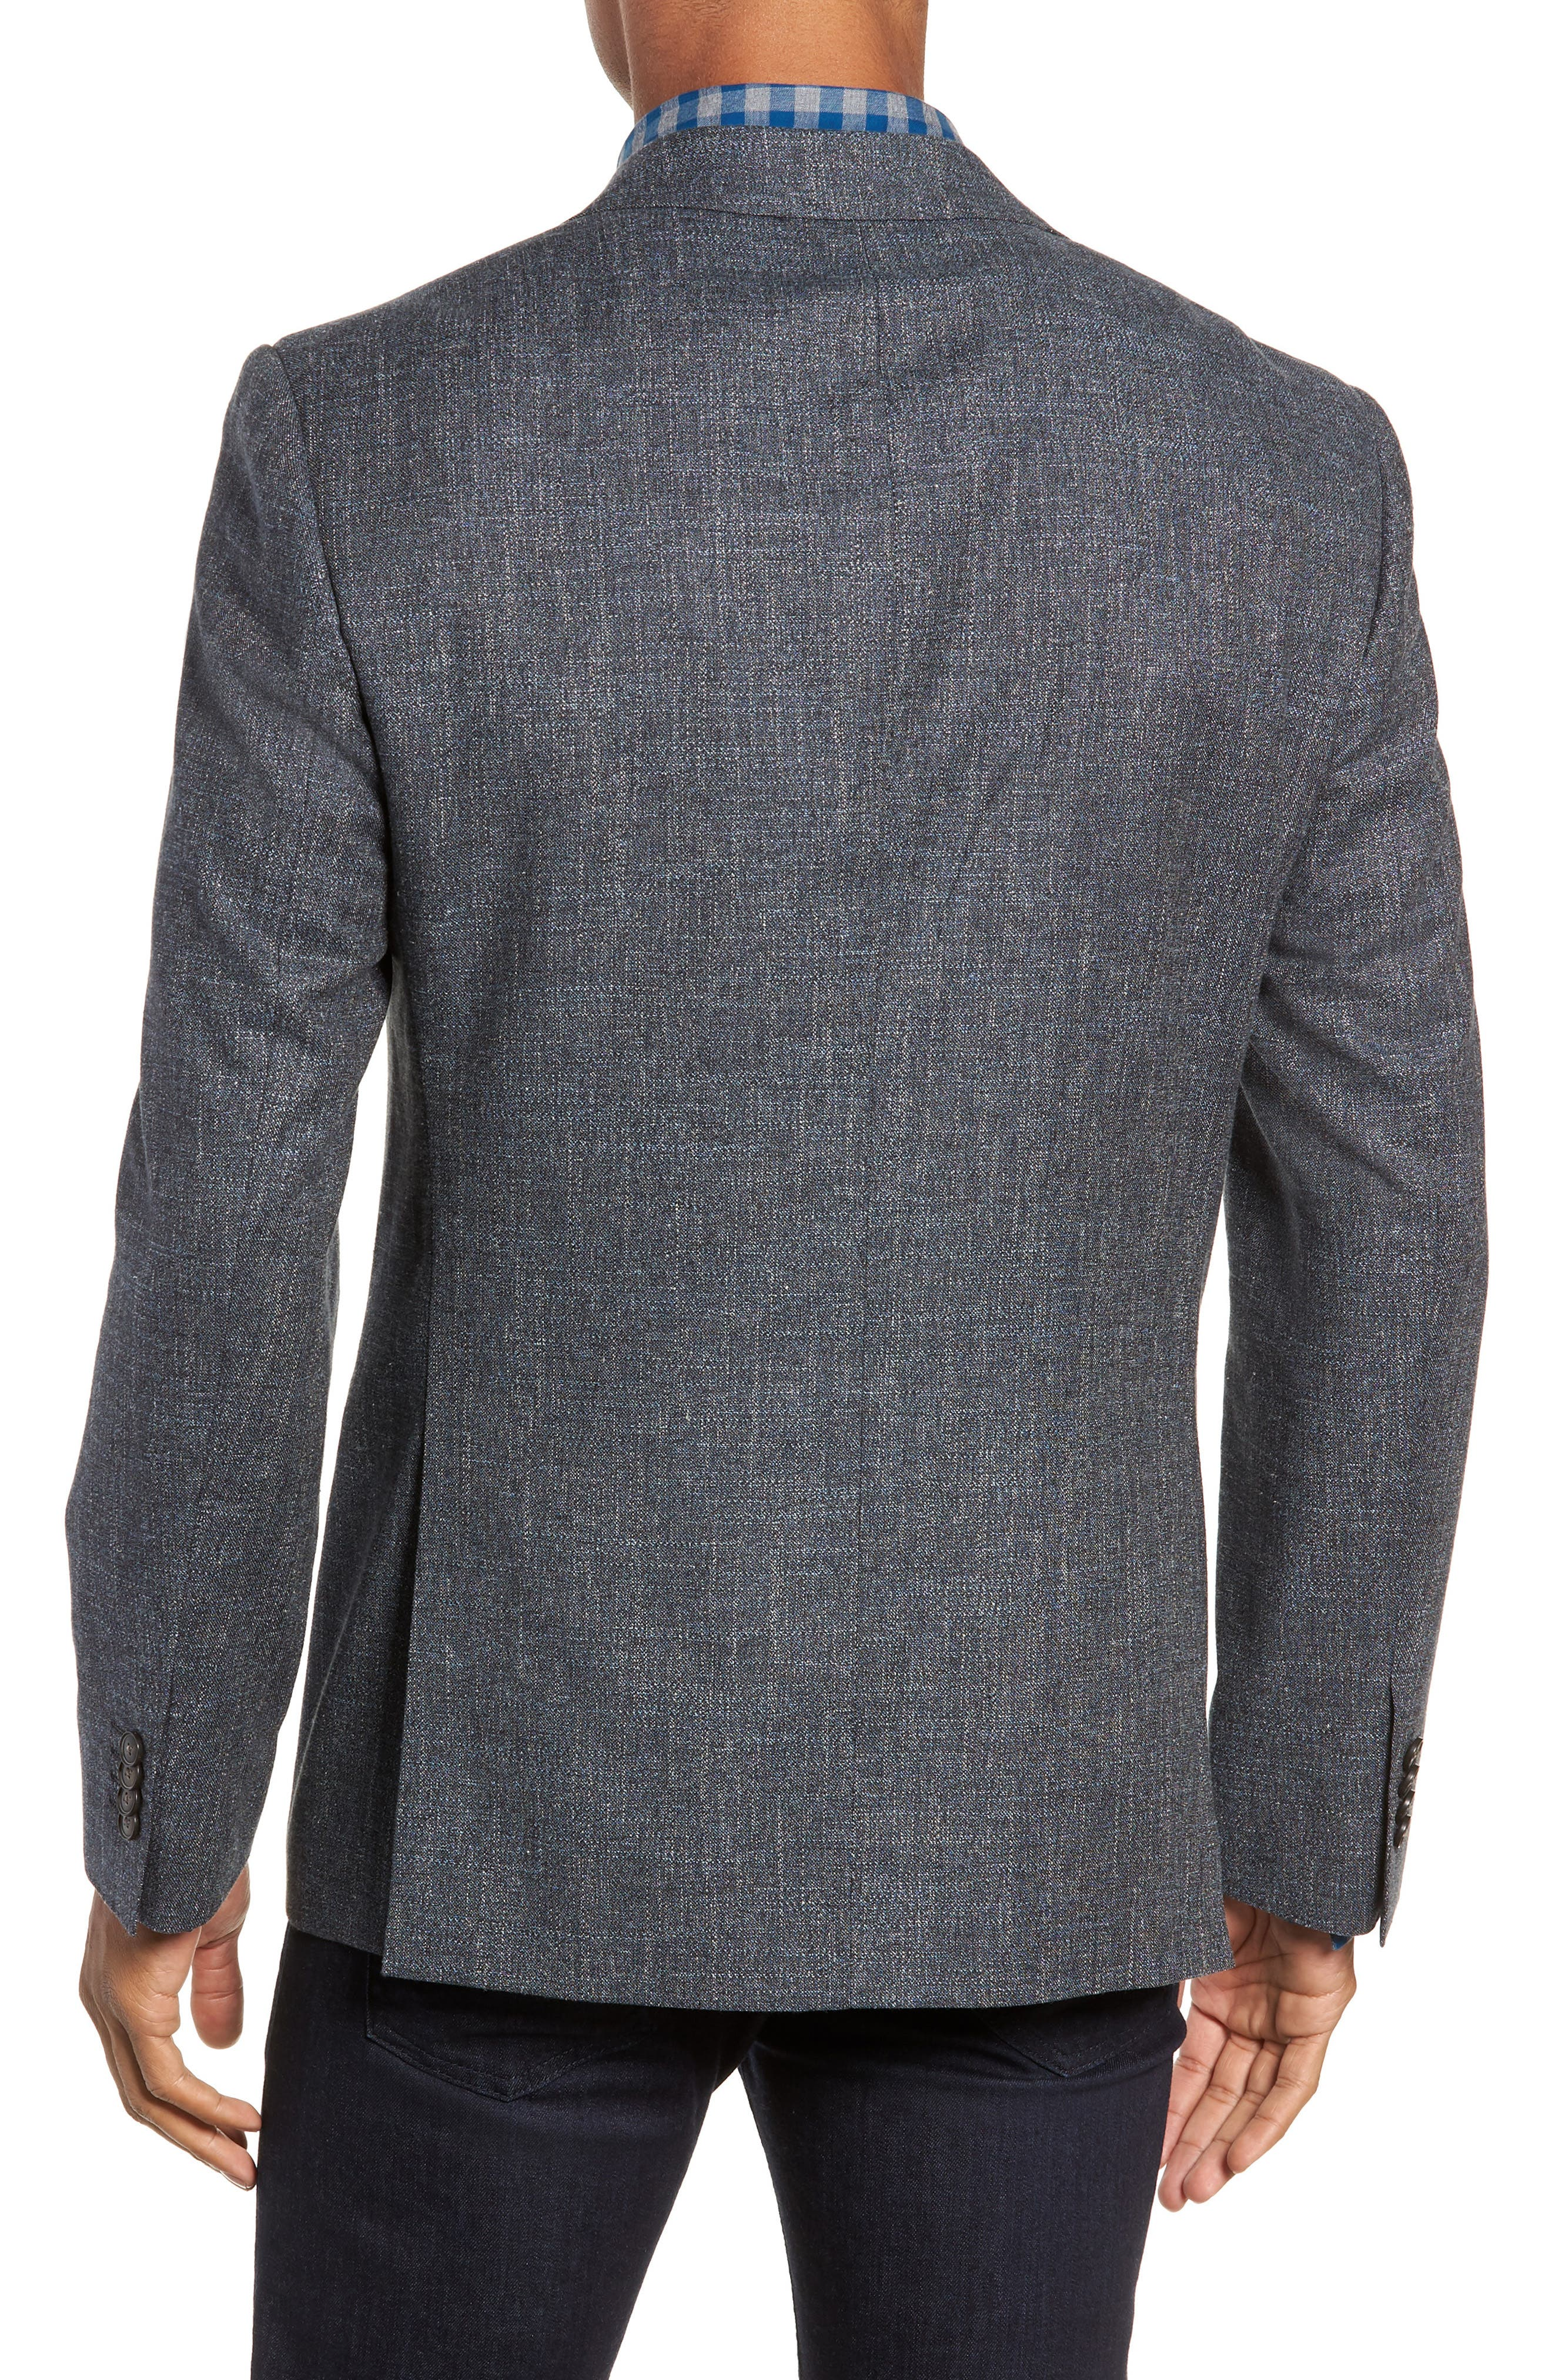 Renton Road Wool & Linen Sport Coat,                             Alternate thumbnail 2, color,                             GRAPHITE